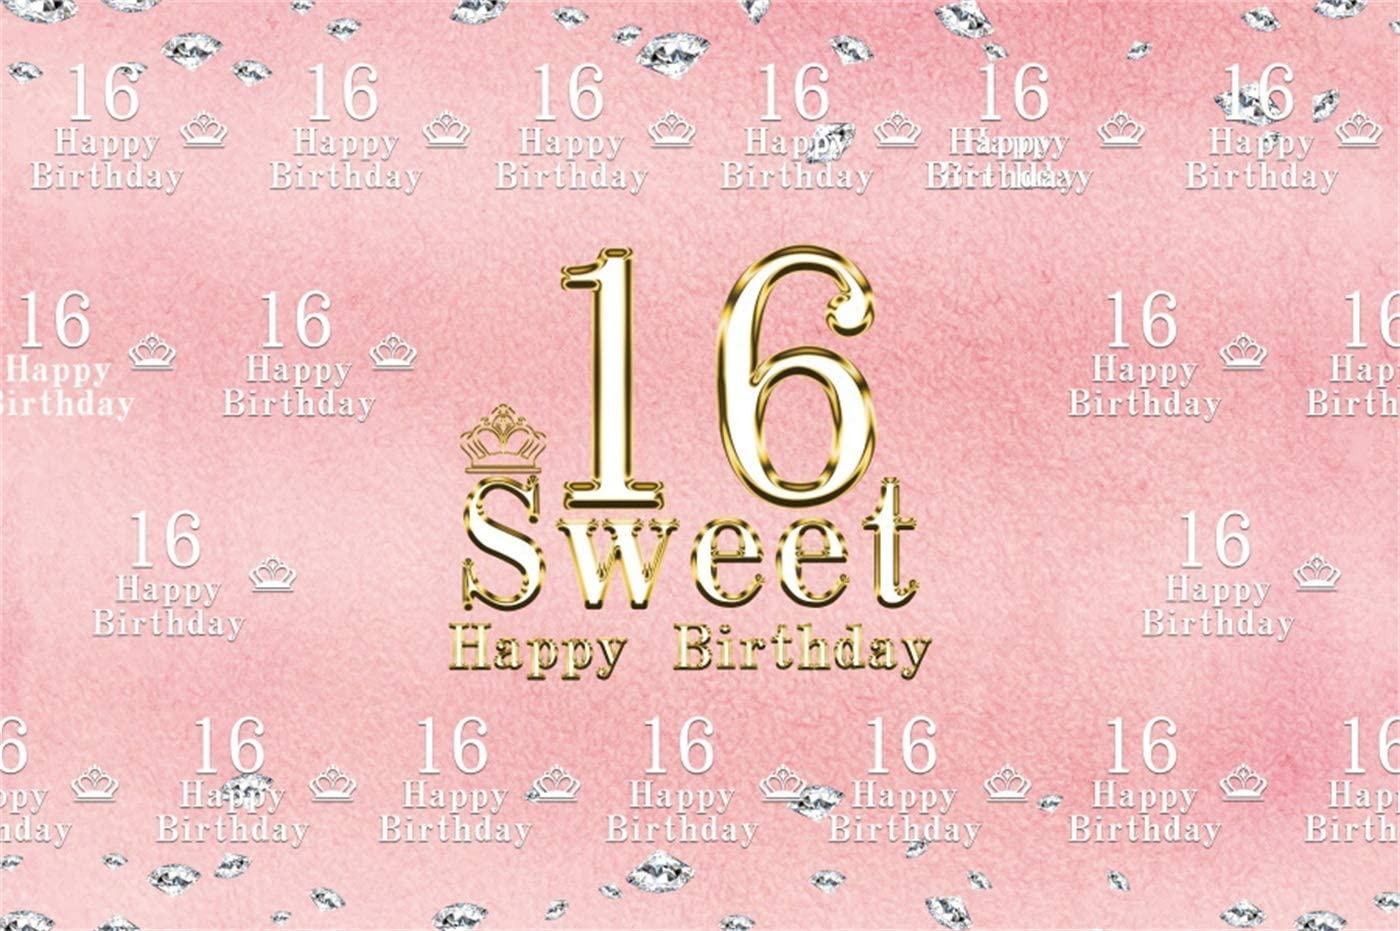 Yeele Sweet 16 Birthday Backdrop Diamond Party 10x8ft Step and Repeat 16 Photography Background Daughter Son Photo Booth Princess Girls Portrait Dessert Table Decor Photoshoot Props Wallpaper